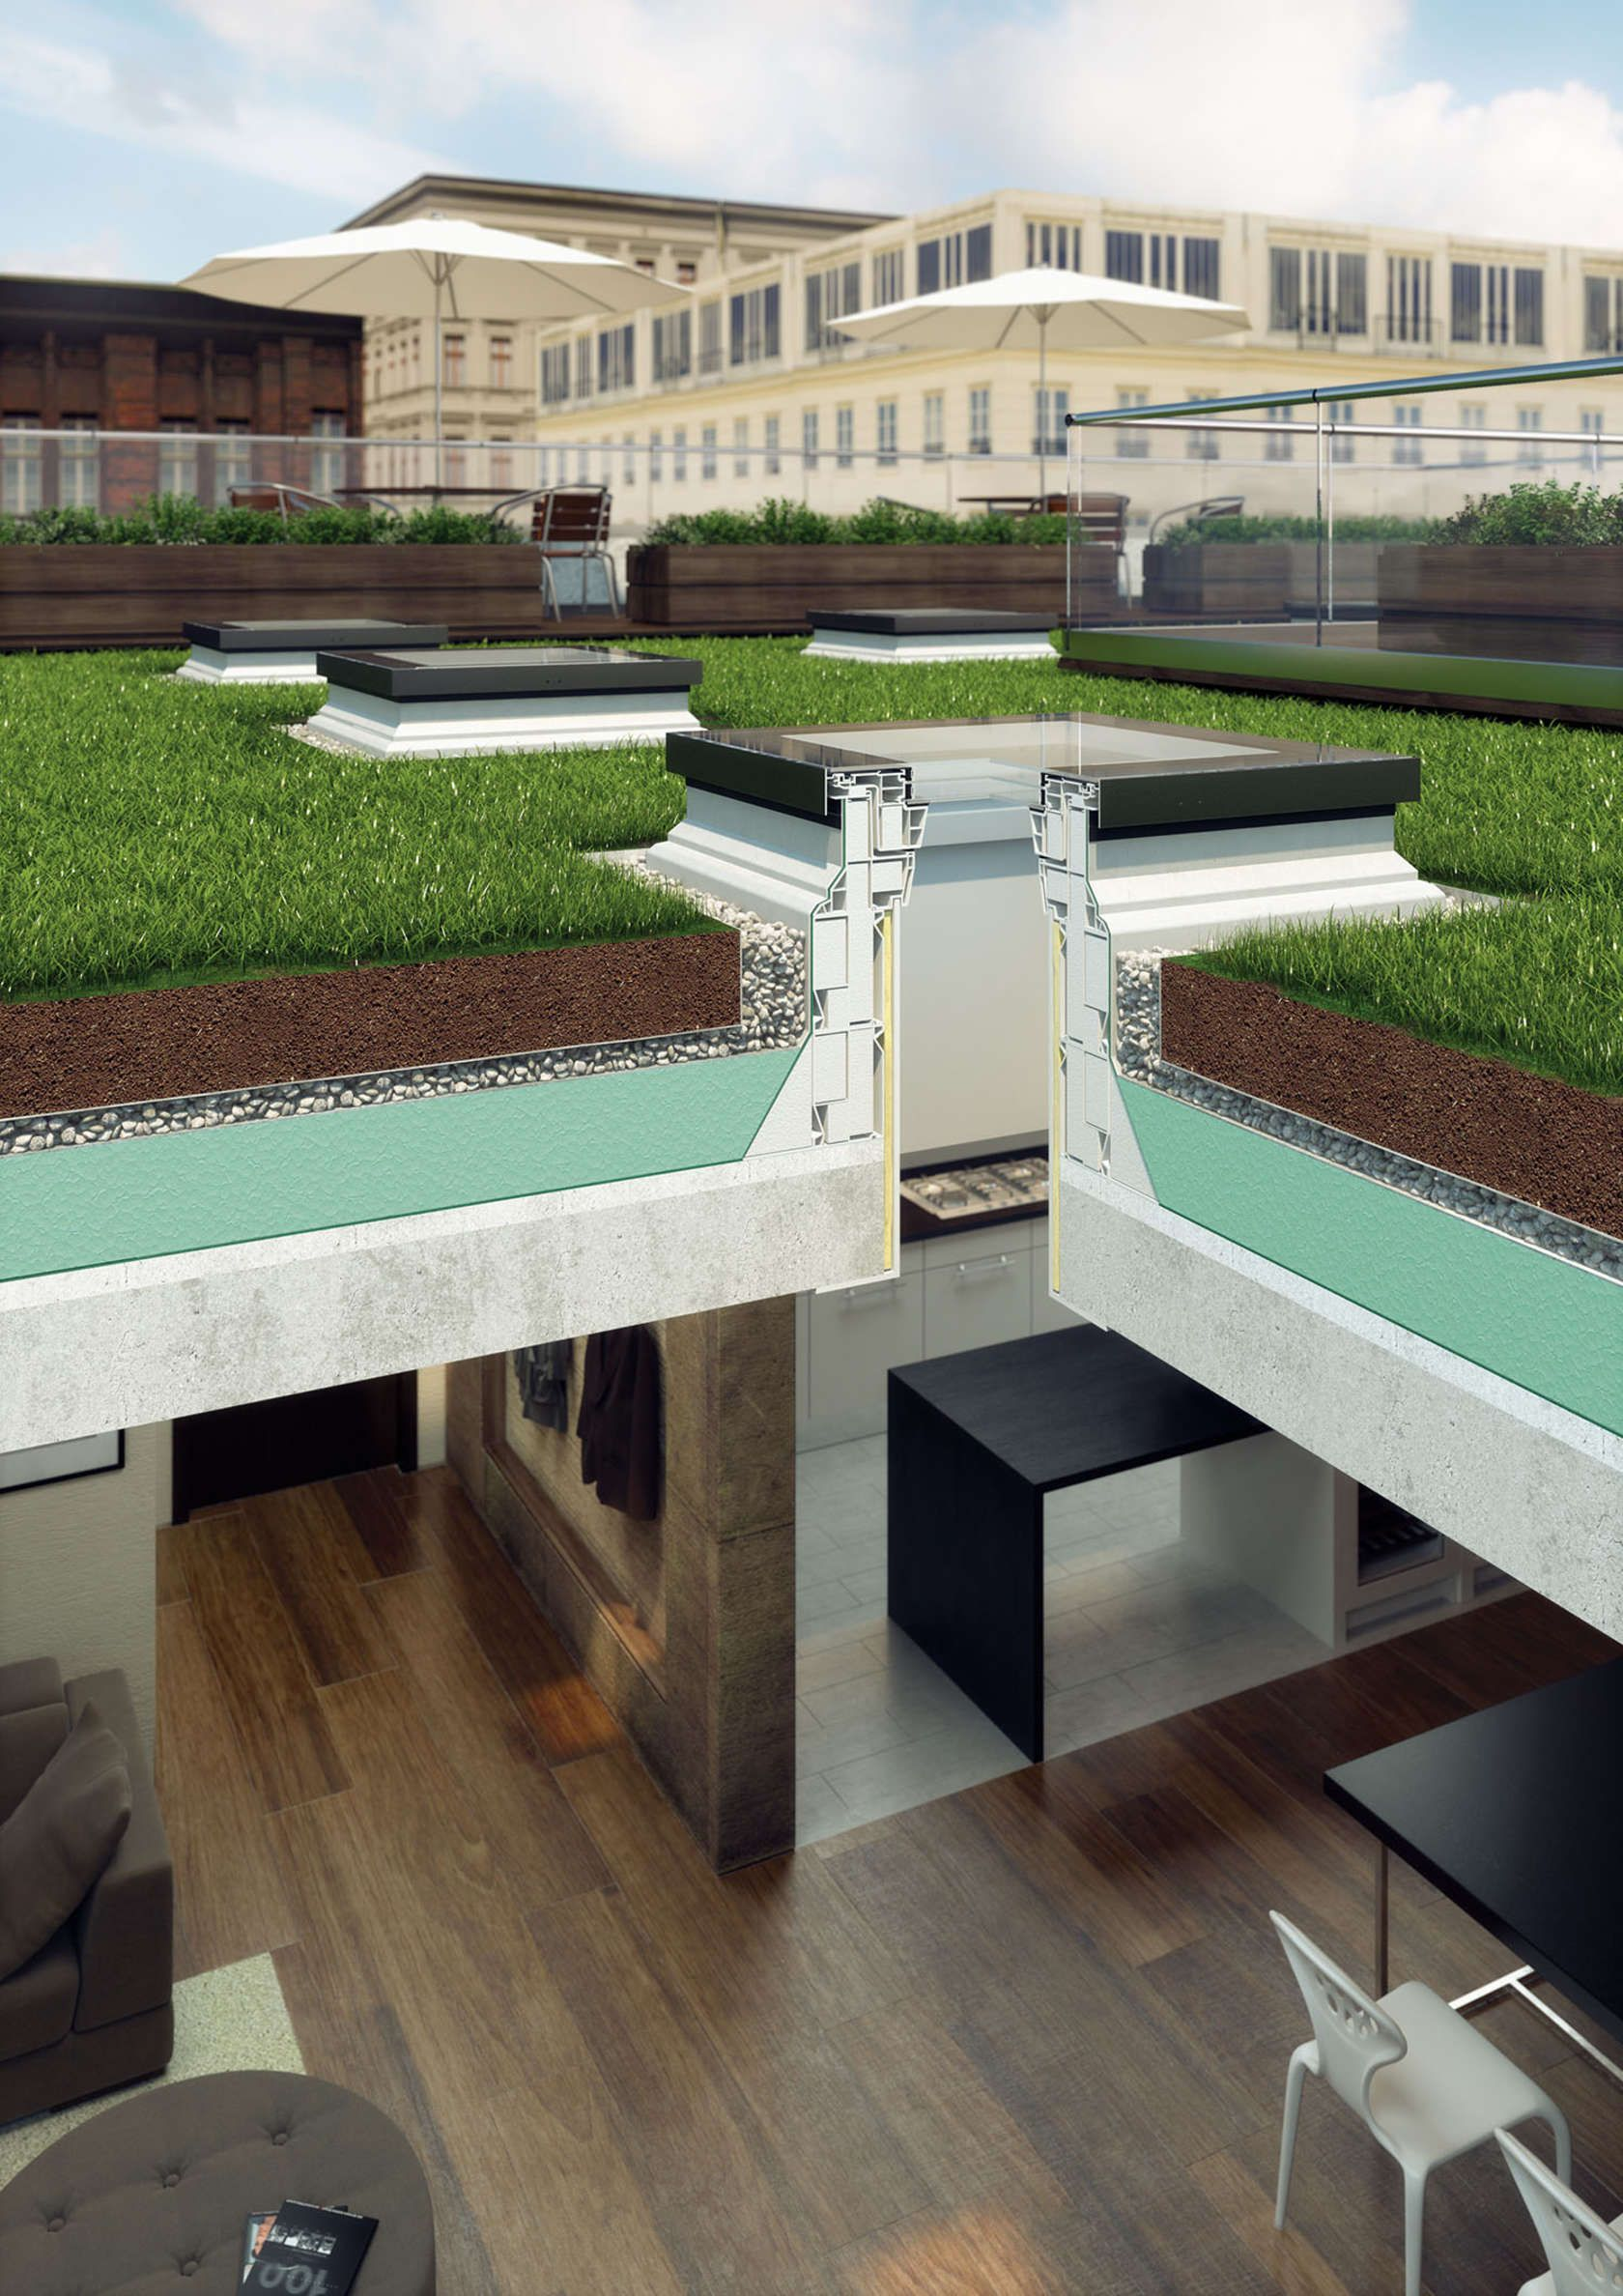 Fakro flat roof window typef floating spaces lawns pinterest